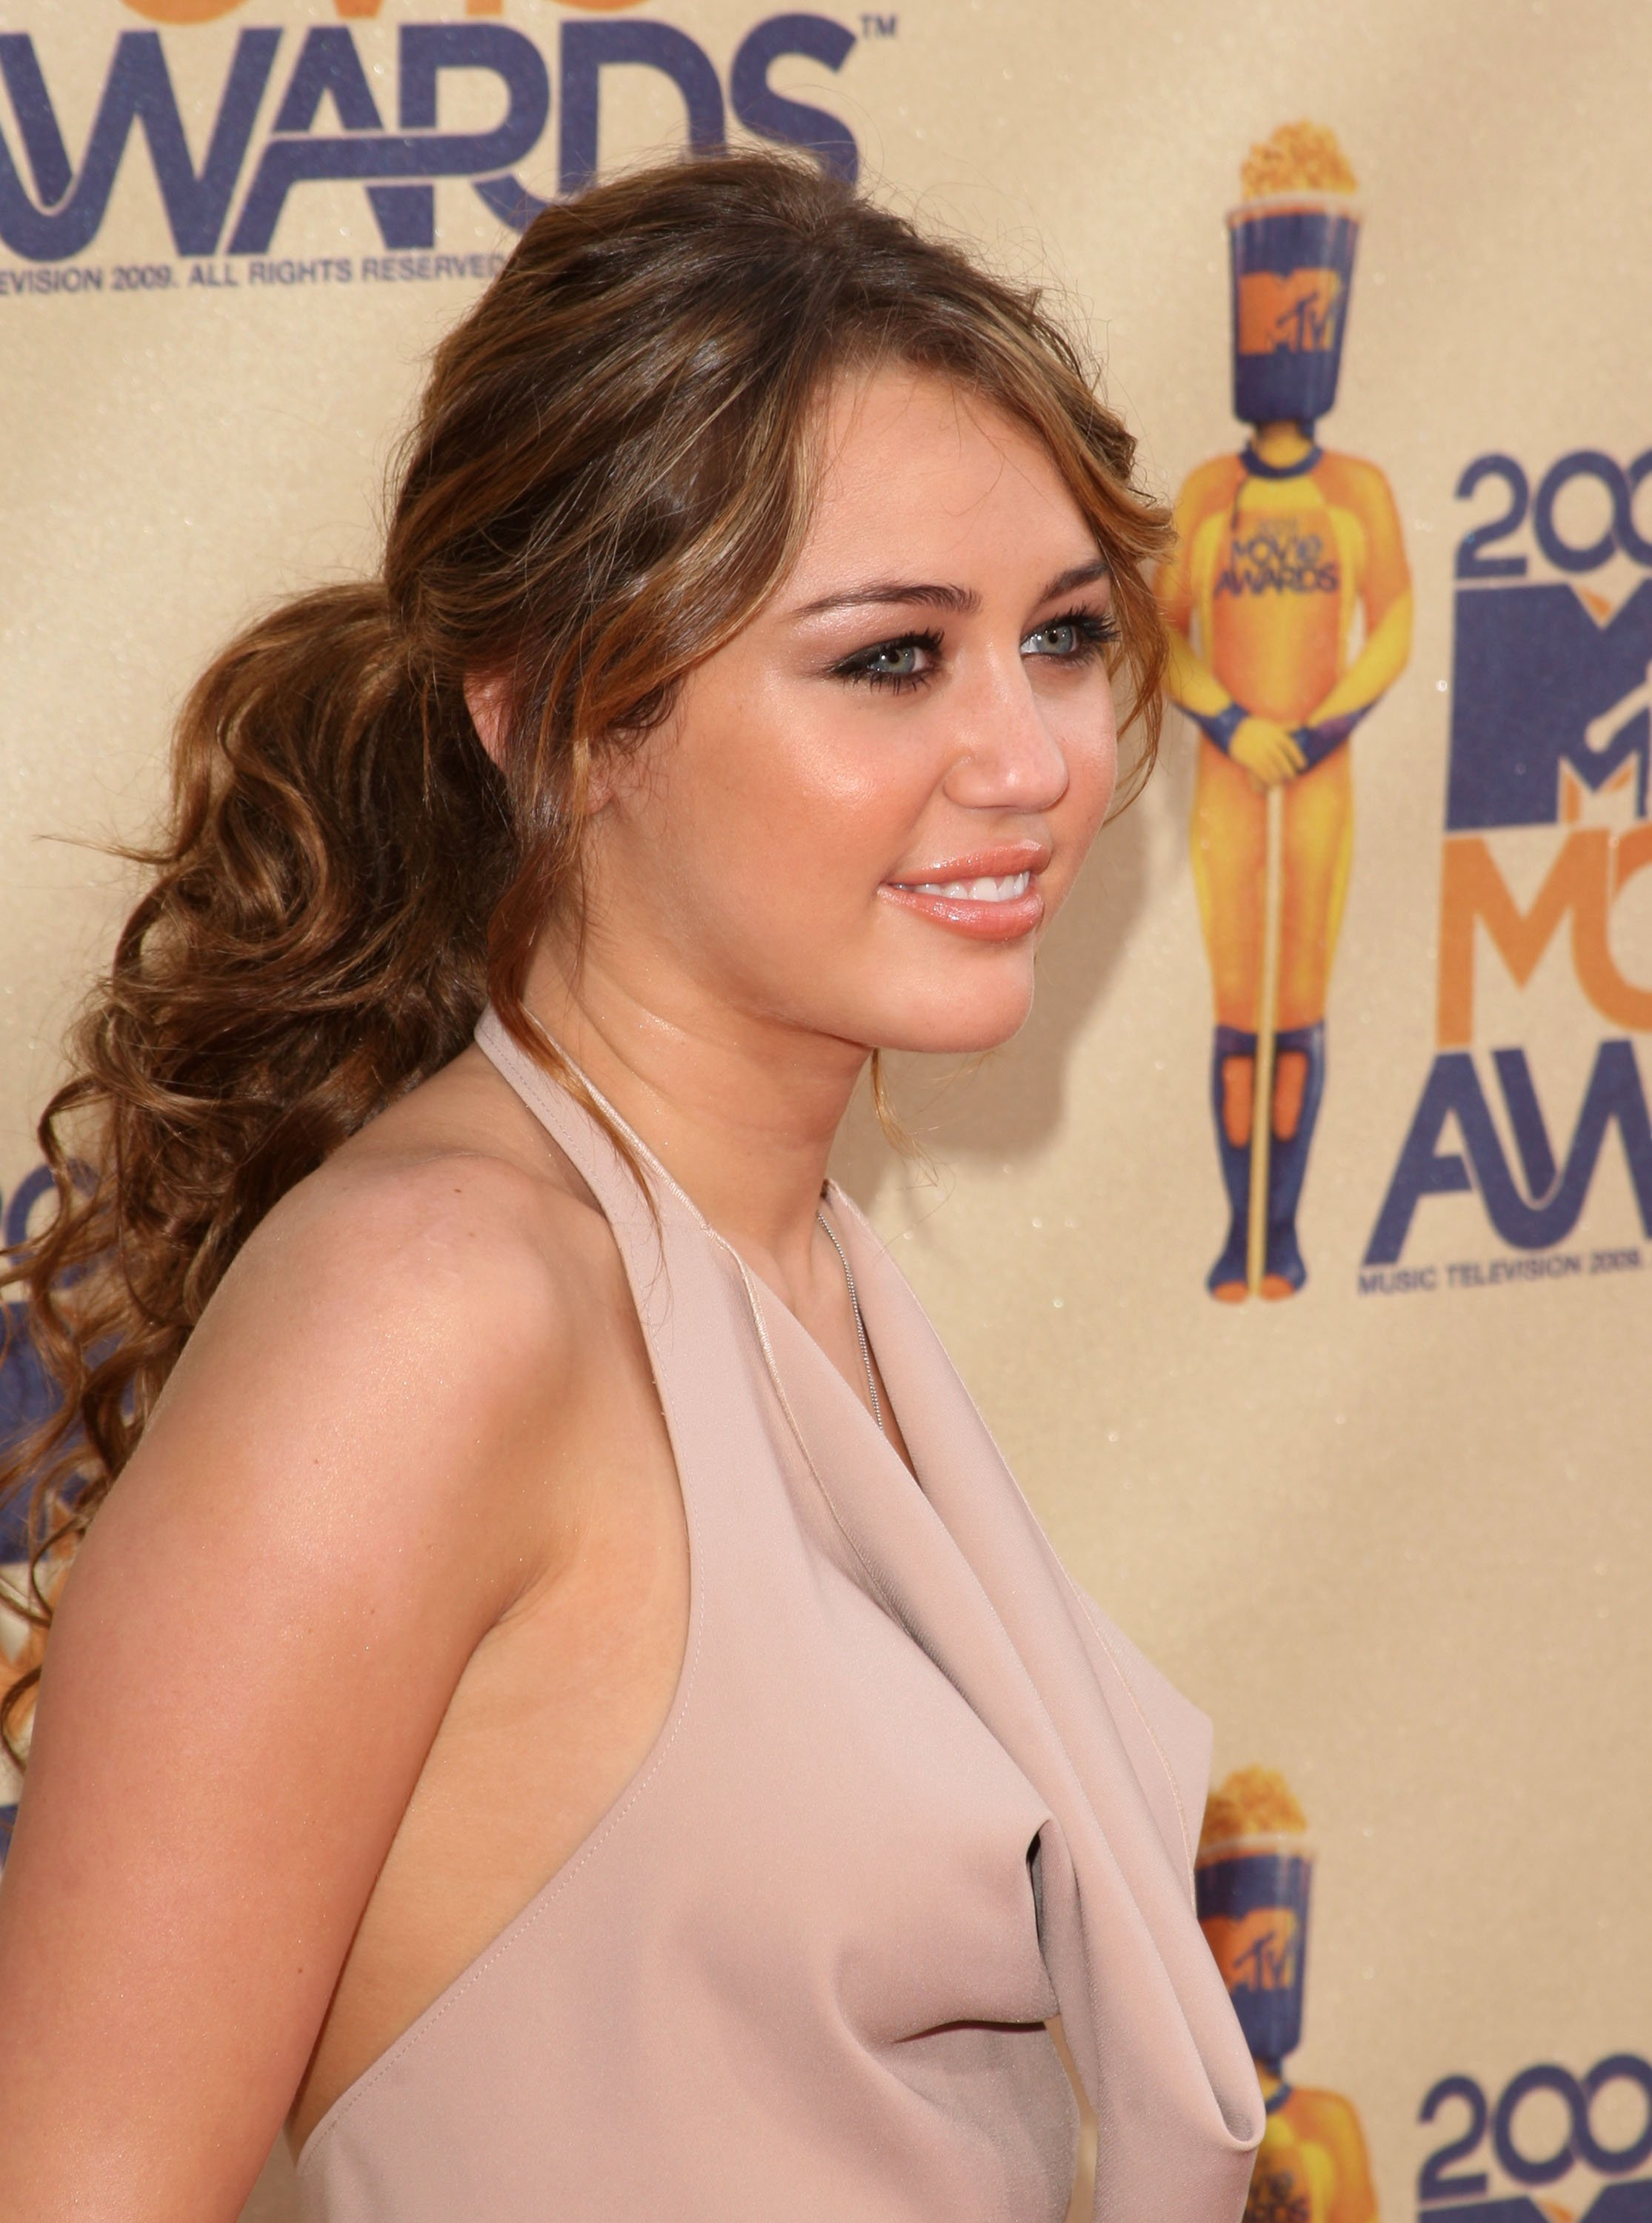 23306_Celebutopia-Miley_Cyrus_arrives_at_the_2009_MTV_Movie_Awards-22_122_57lo.jpg